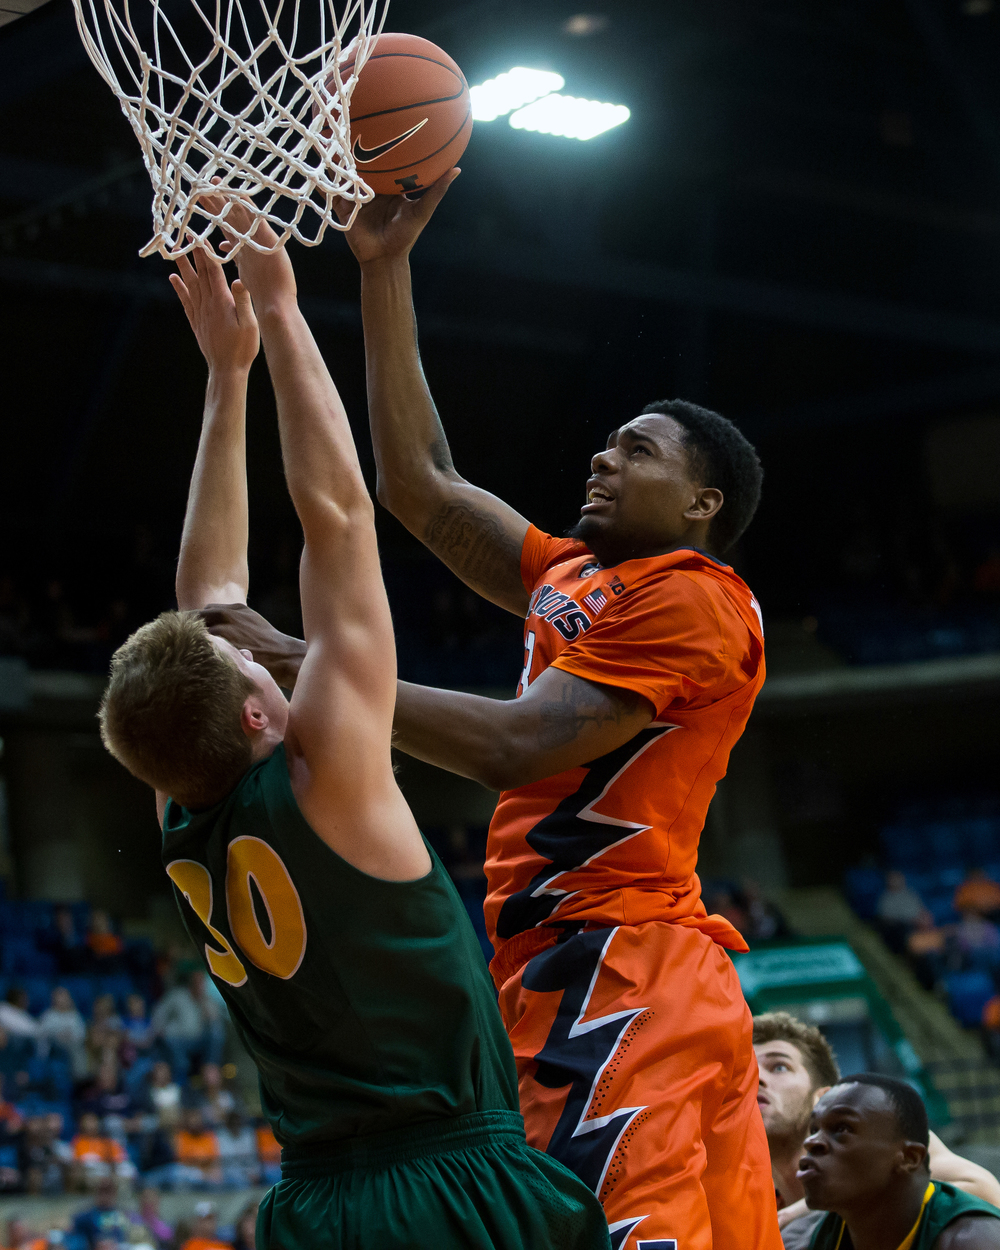 University of Illinois' Mike Thorne Jr. (33) puts in a shot over North Dakota State University's Spencer Eliason (30) during the second half at the Prairie Capital Convention Center, Sunday, Nov. 15, 2015, in Springfield, Ill. Justin L. Fowler/The State Journal-Register